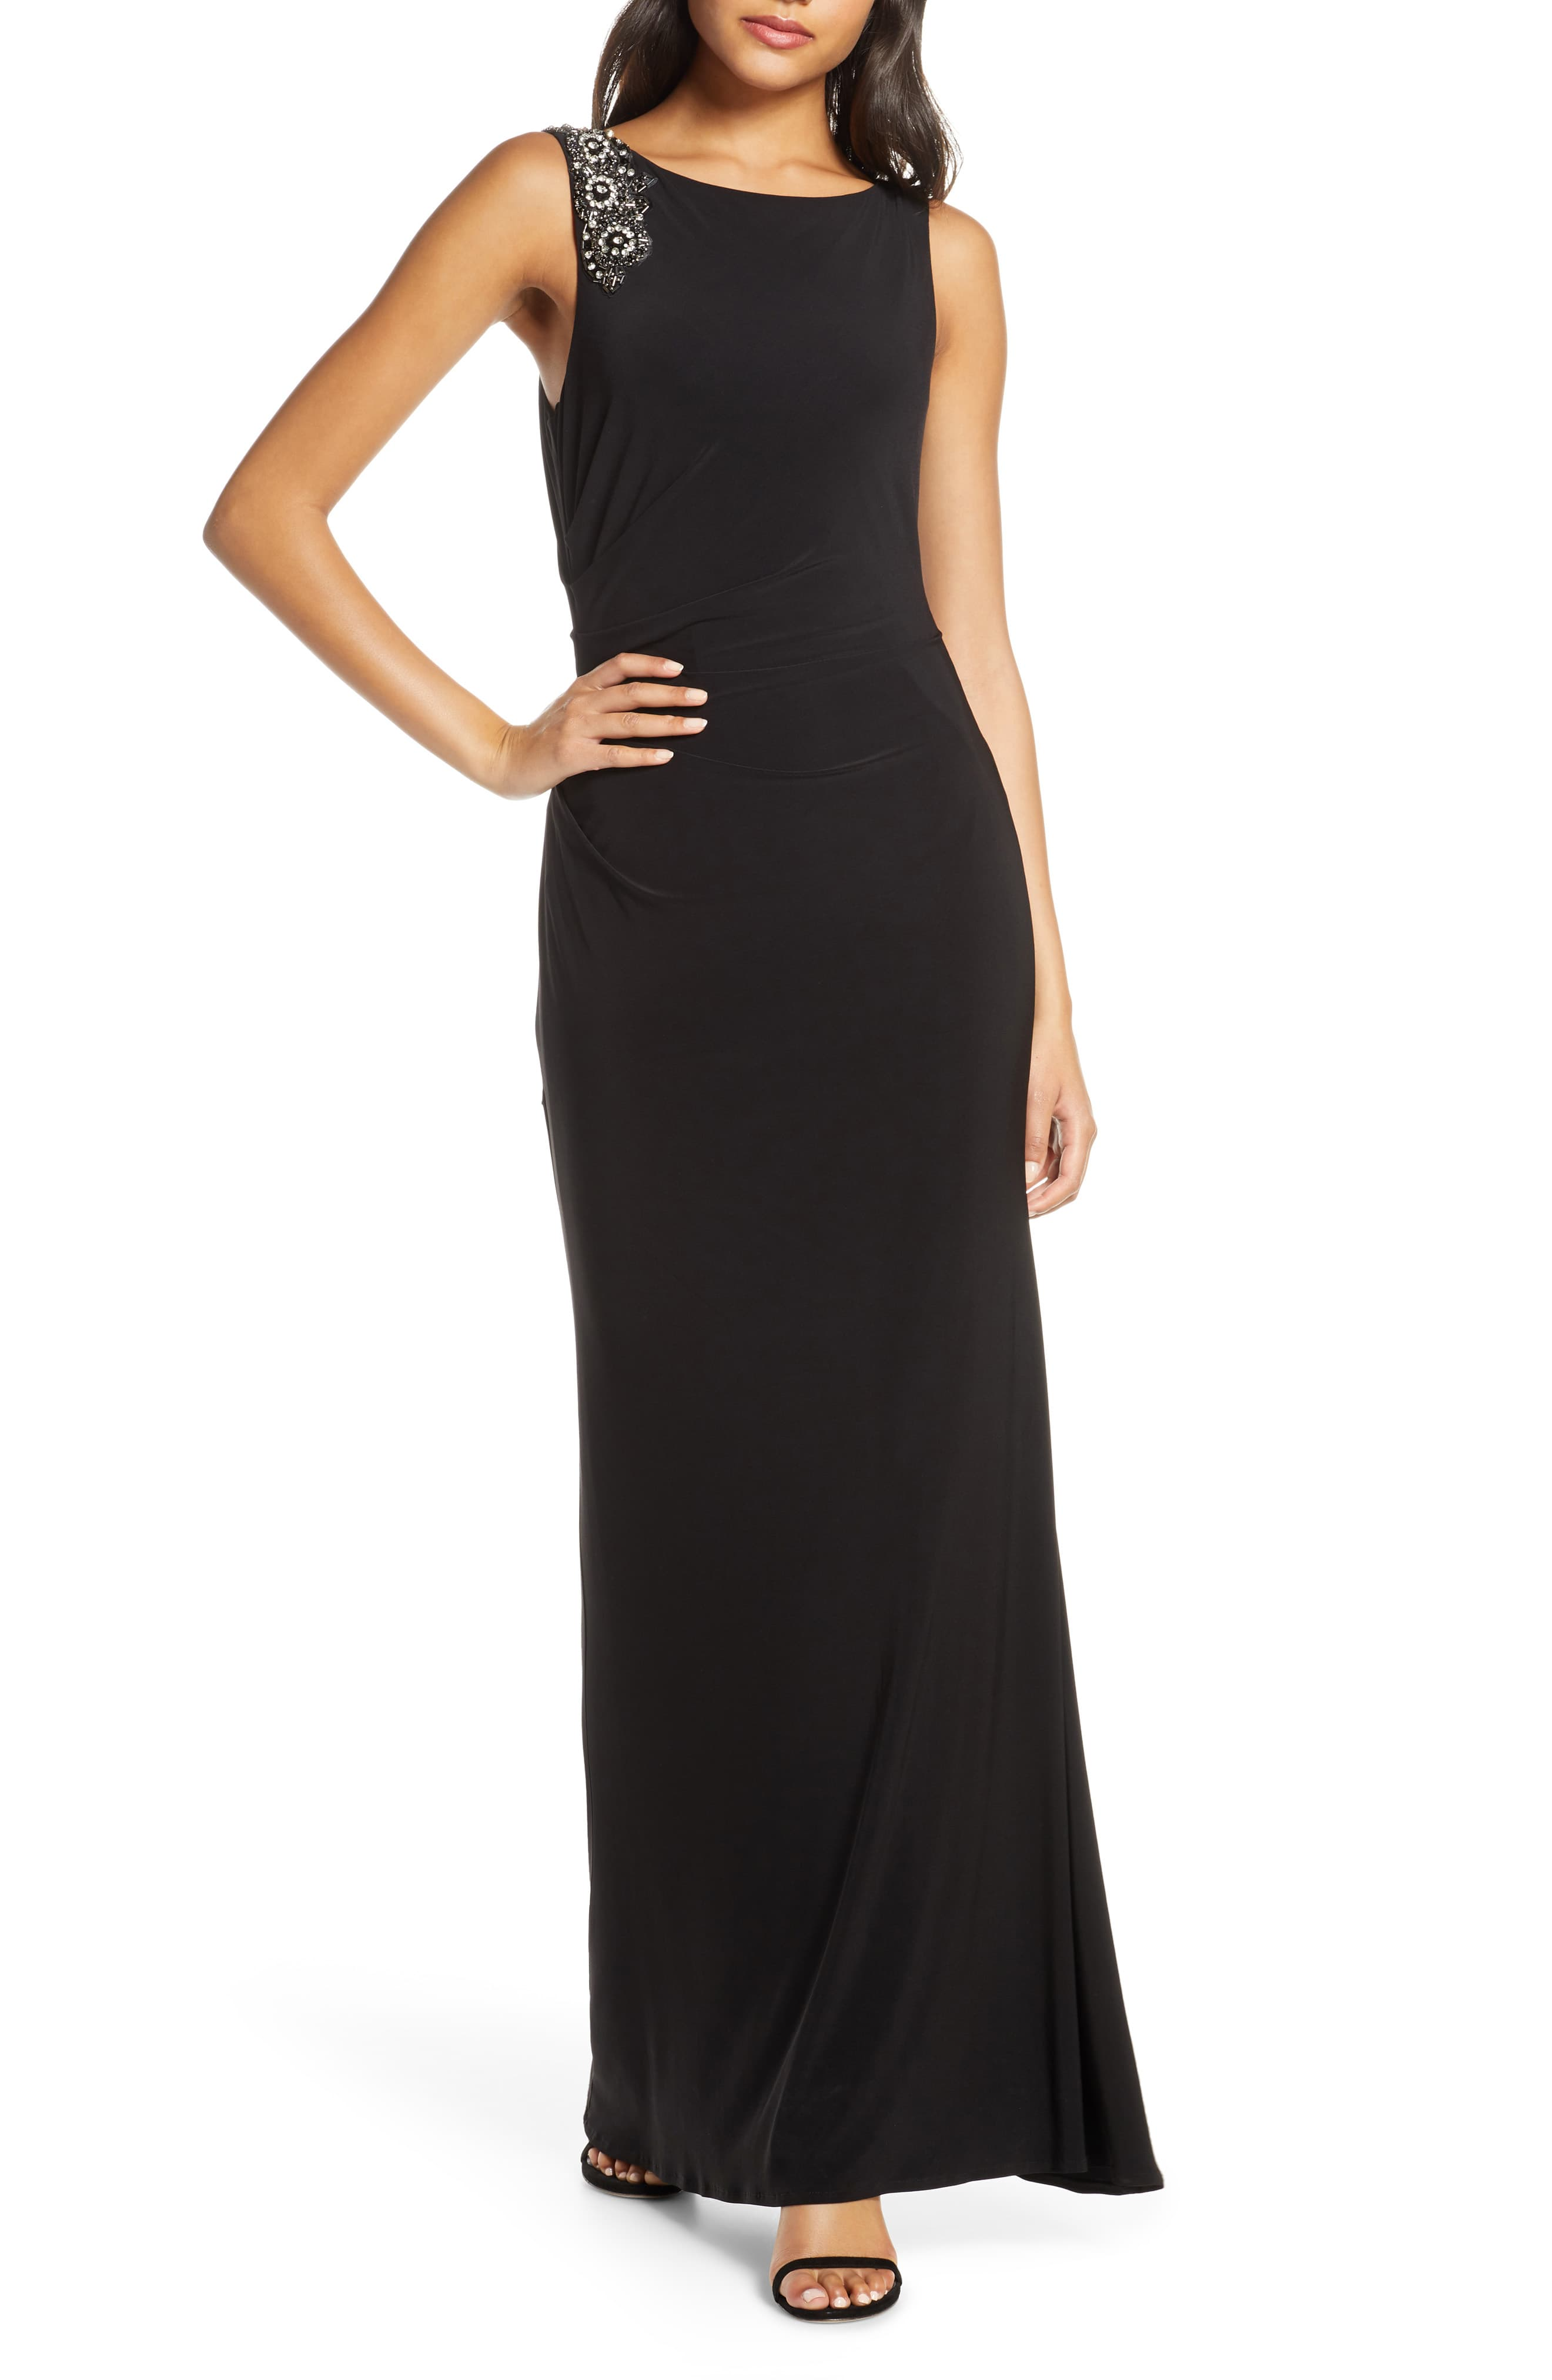 Vince-Camuto-Women-039-s-Dress-Black-Size-10P-Petite-Embellished-Gown